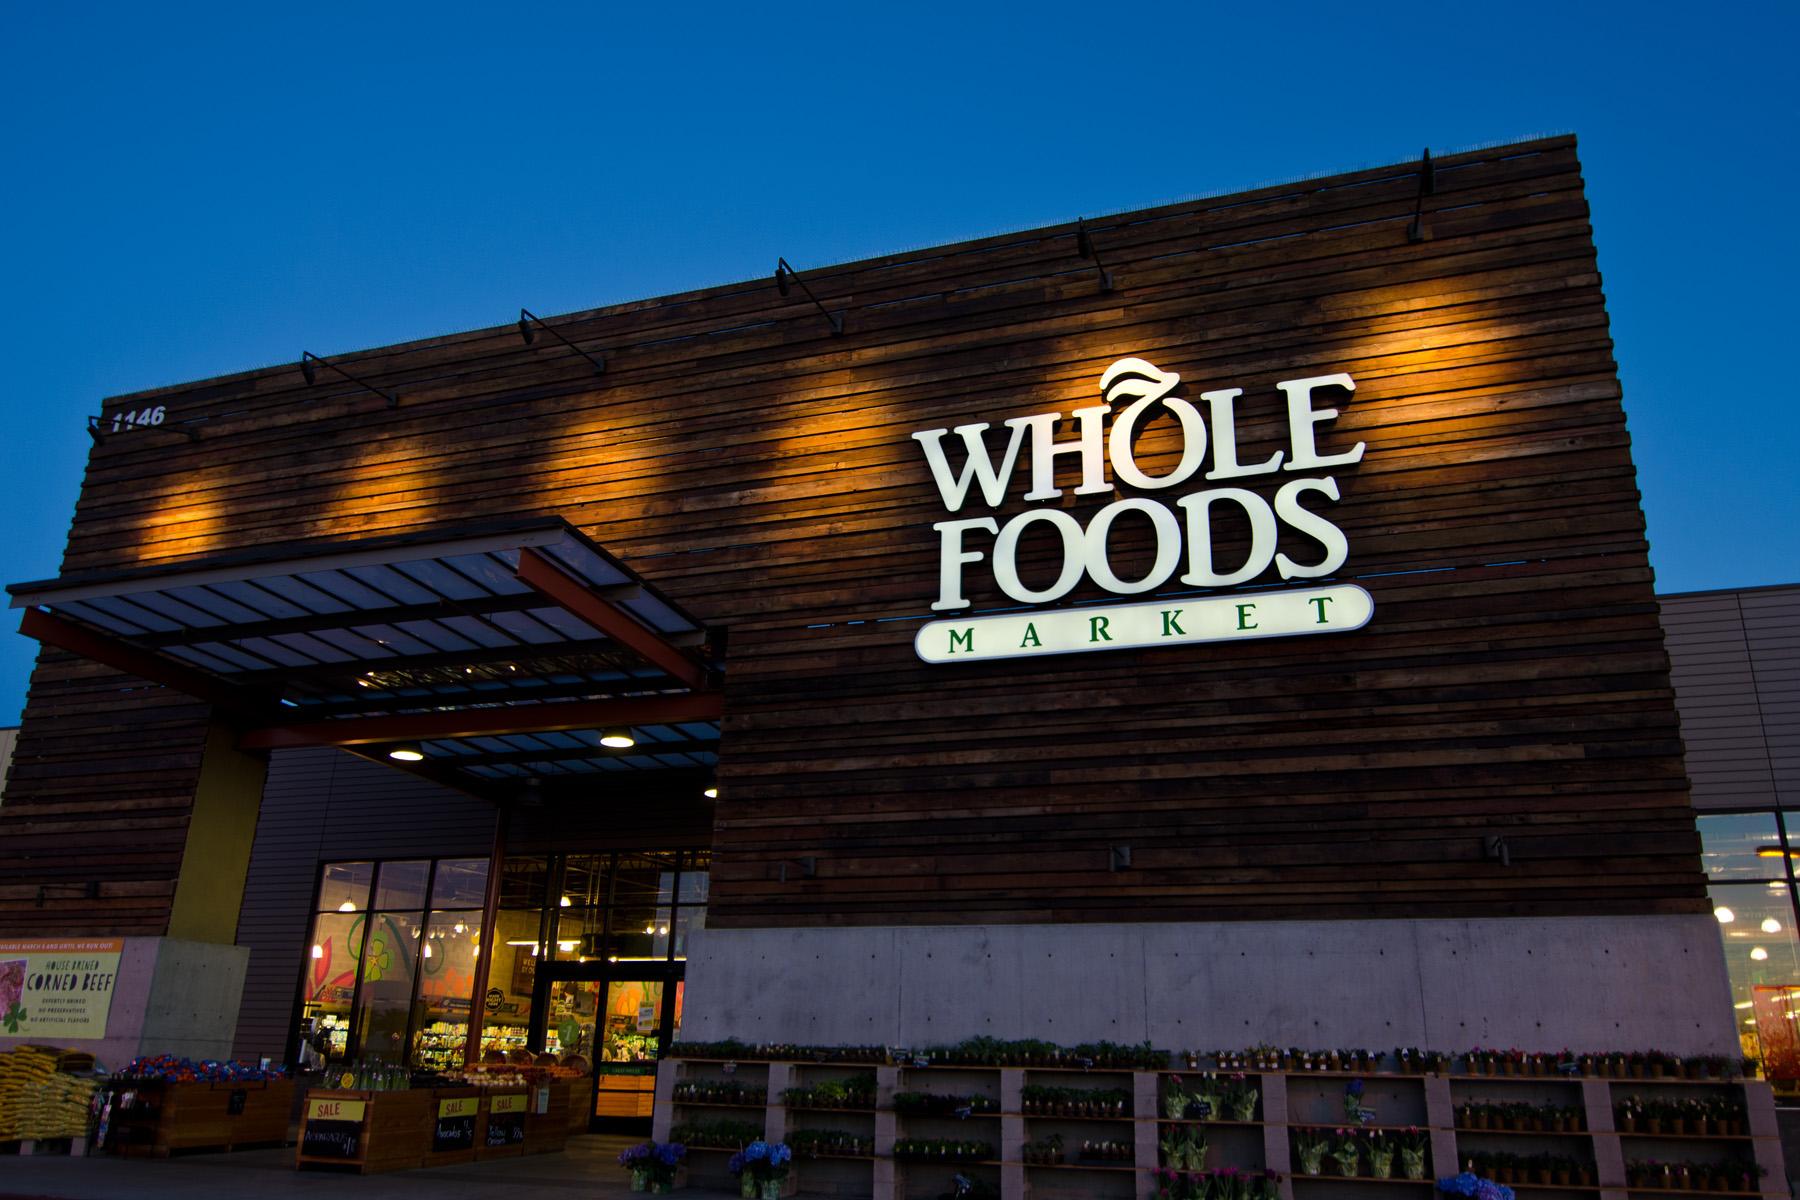 home assignment on whole foods market Whole foods market now delivered in newark - newark, nj - more new jersey residents can get groceries from whole foods market delivered to their home with the expansion of its prime now service.